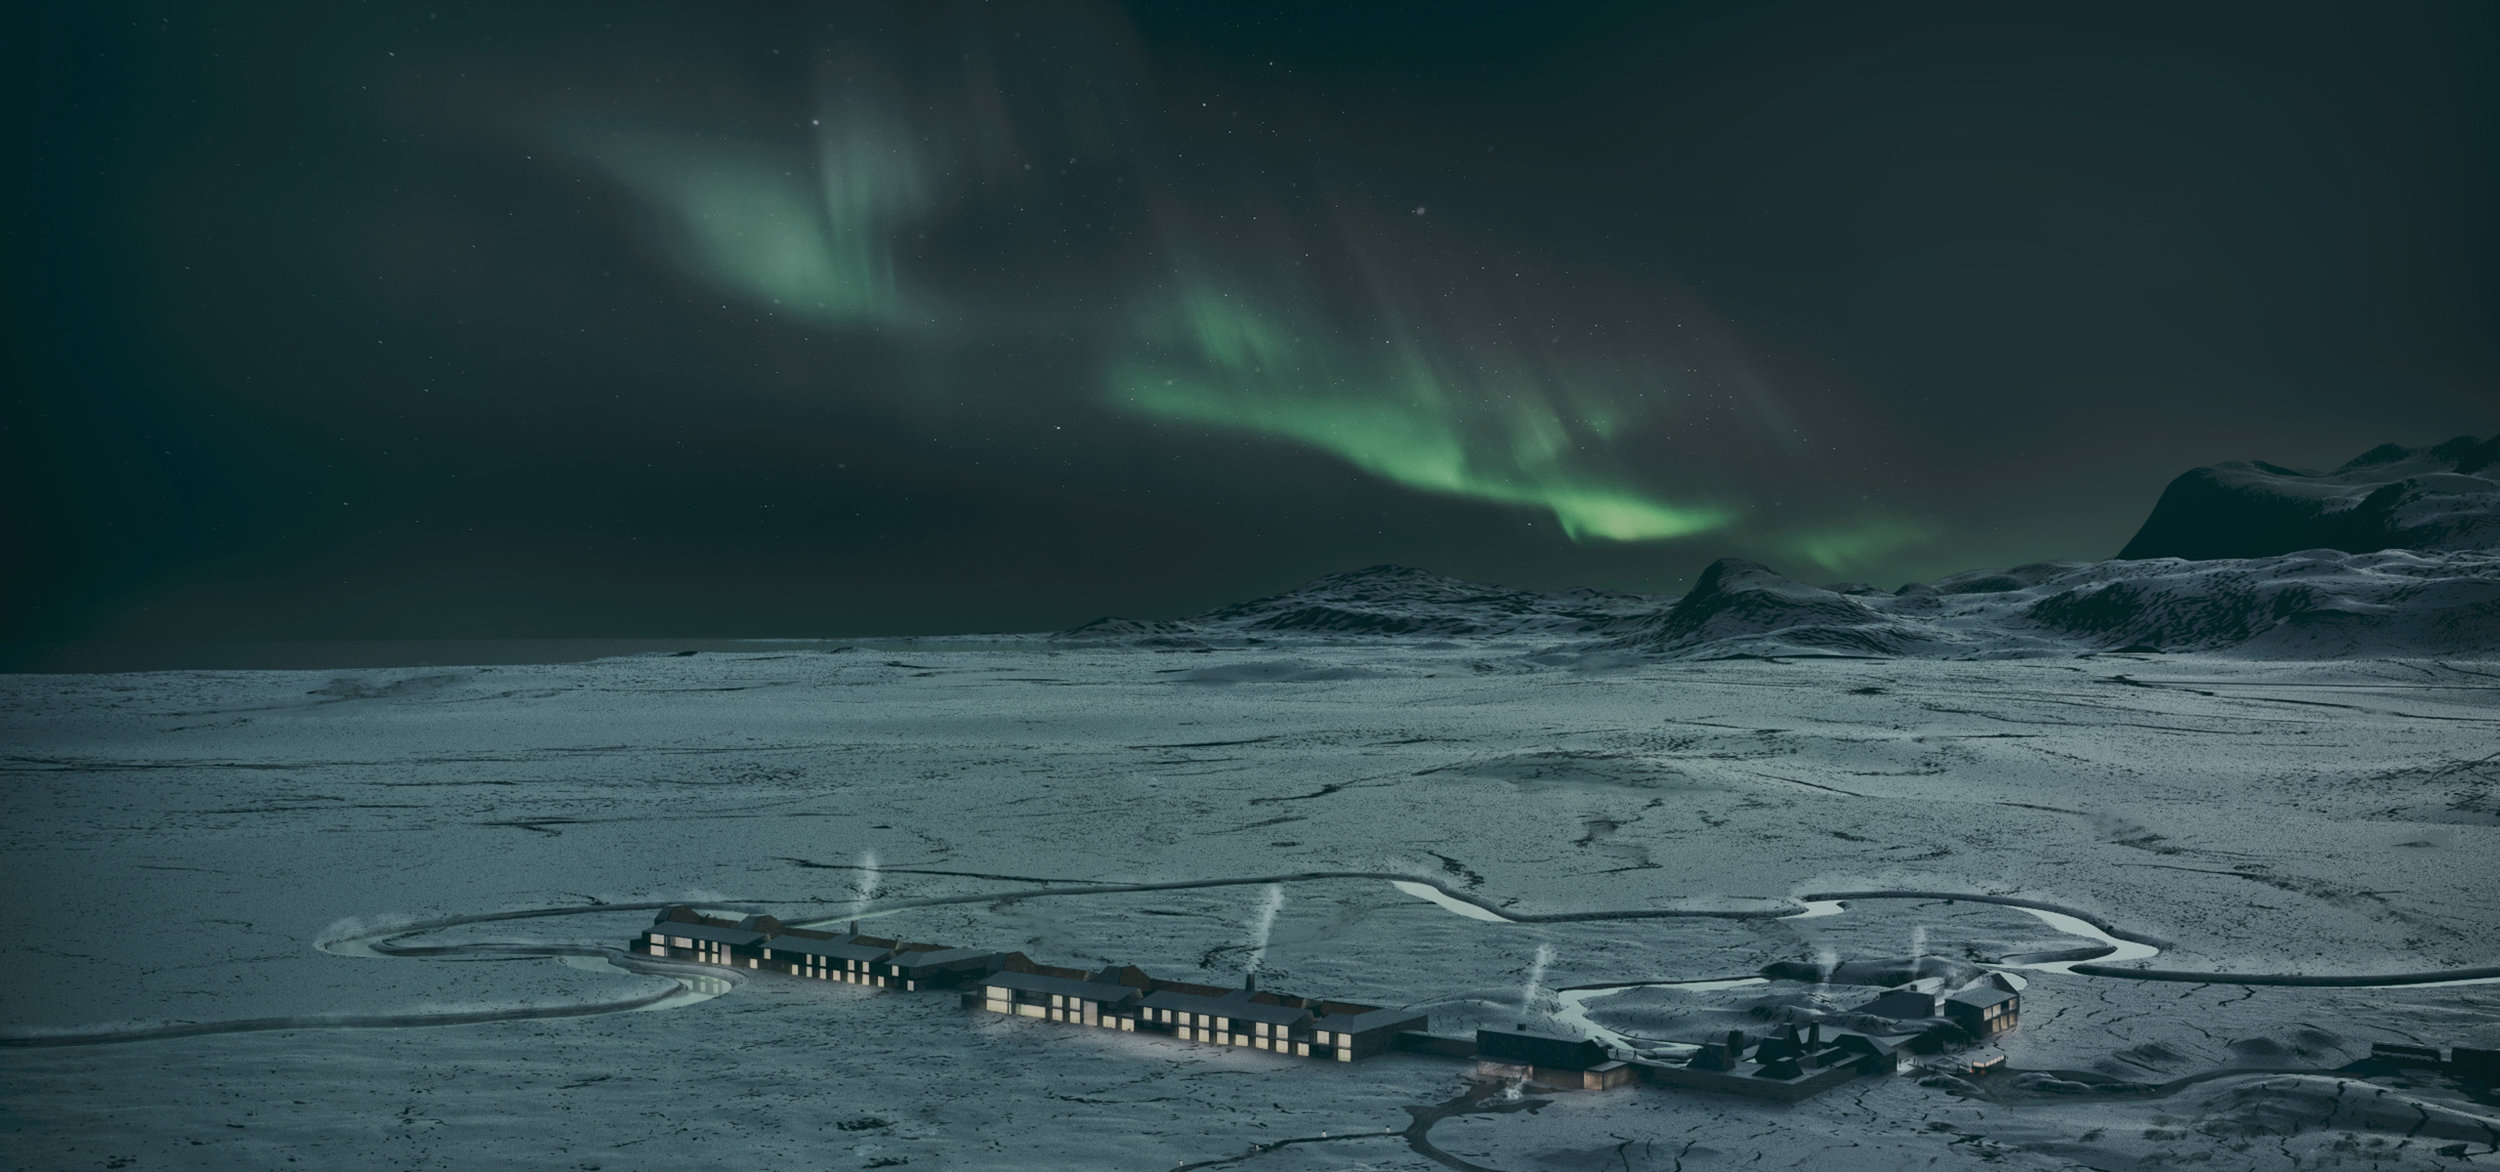 Architecture Concept - Red Mountain Lagoon with Northern Lights.jpg